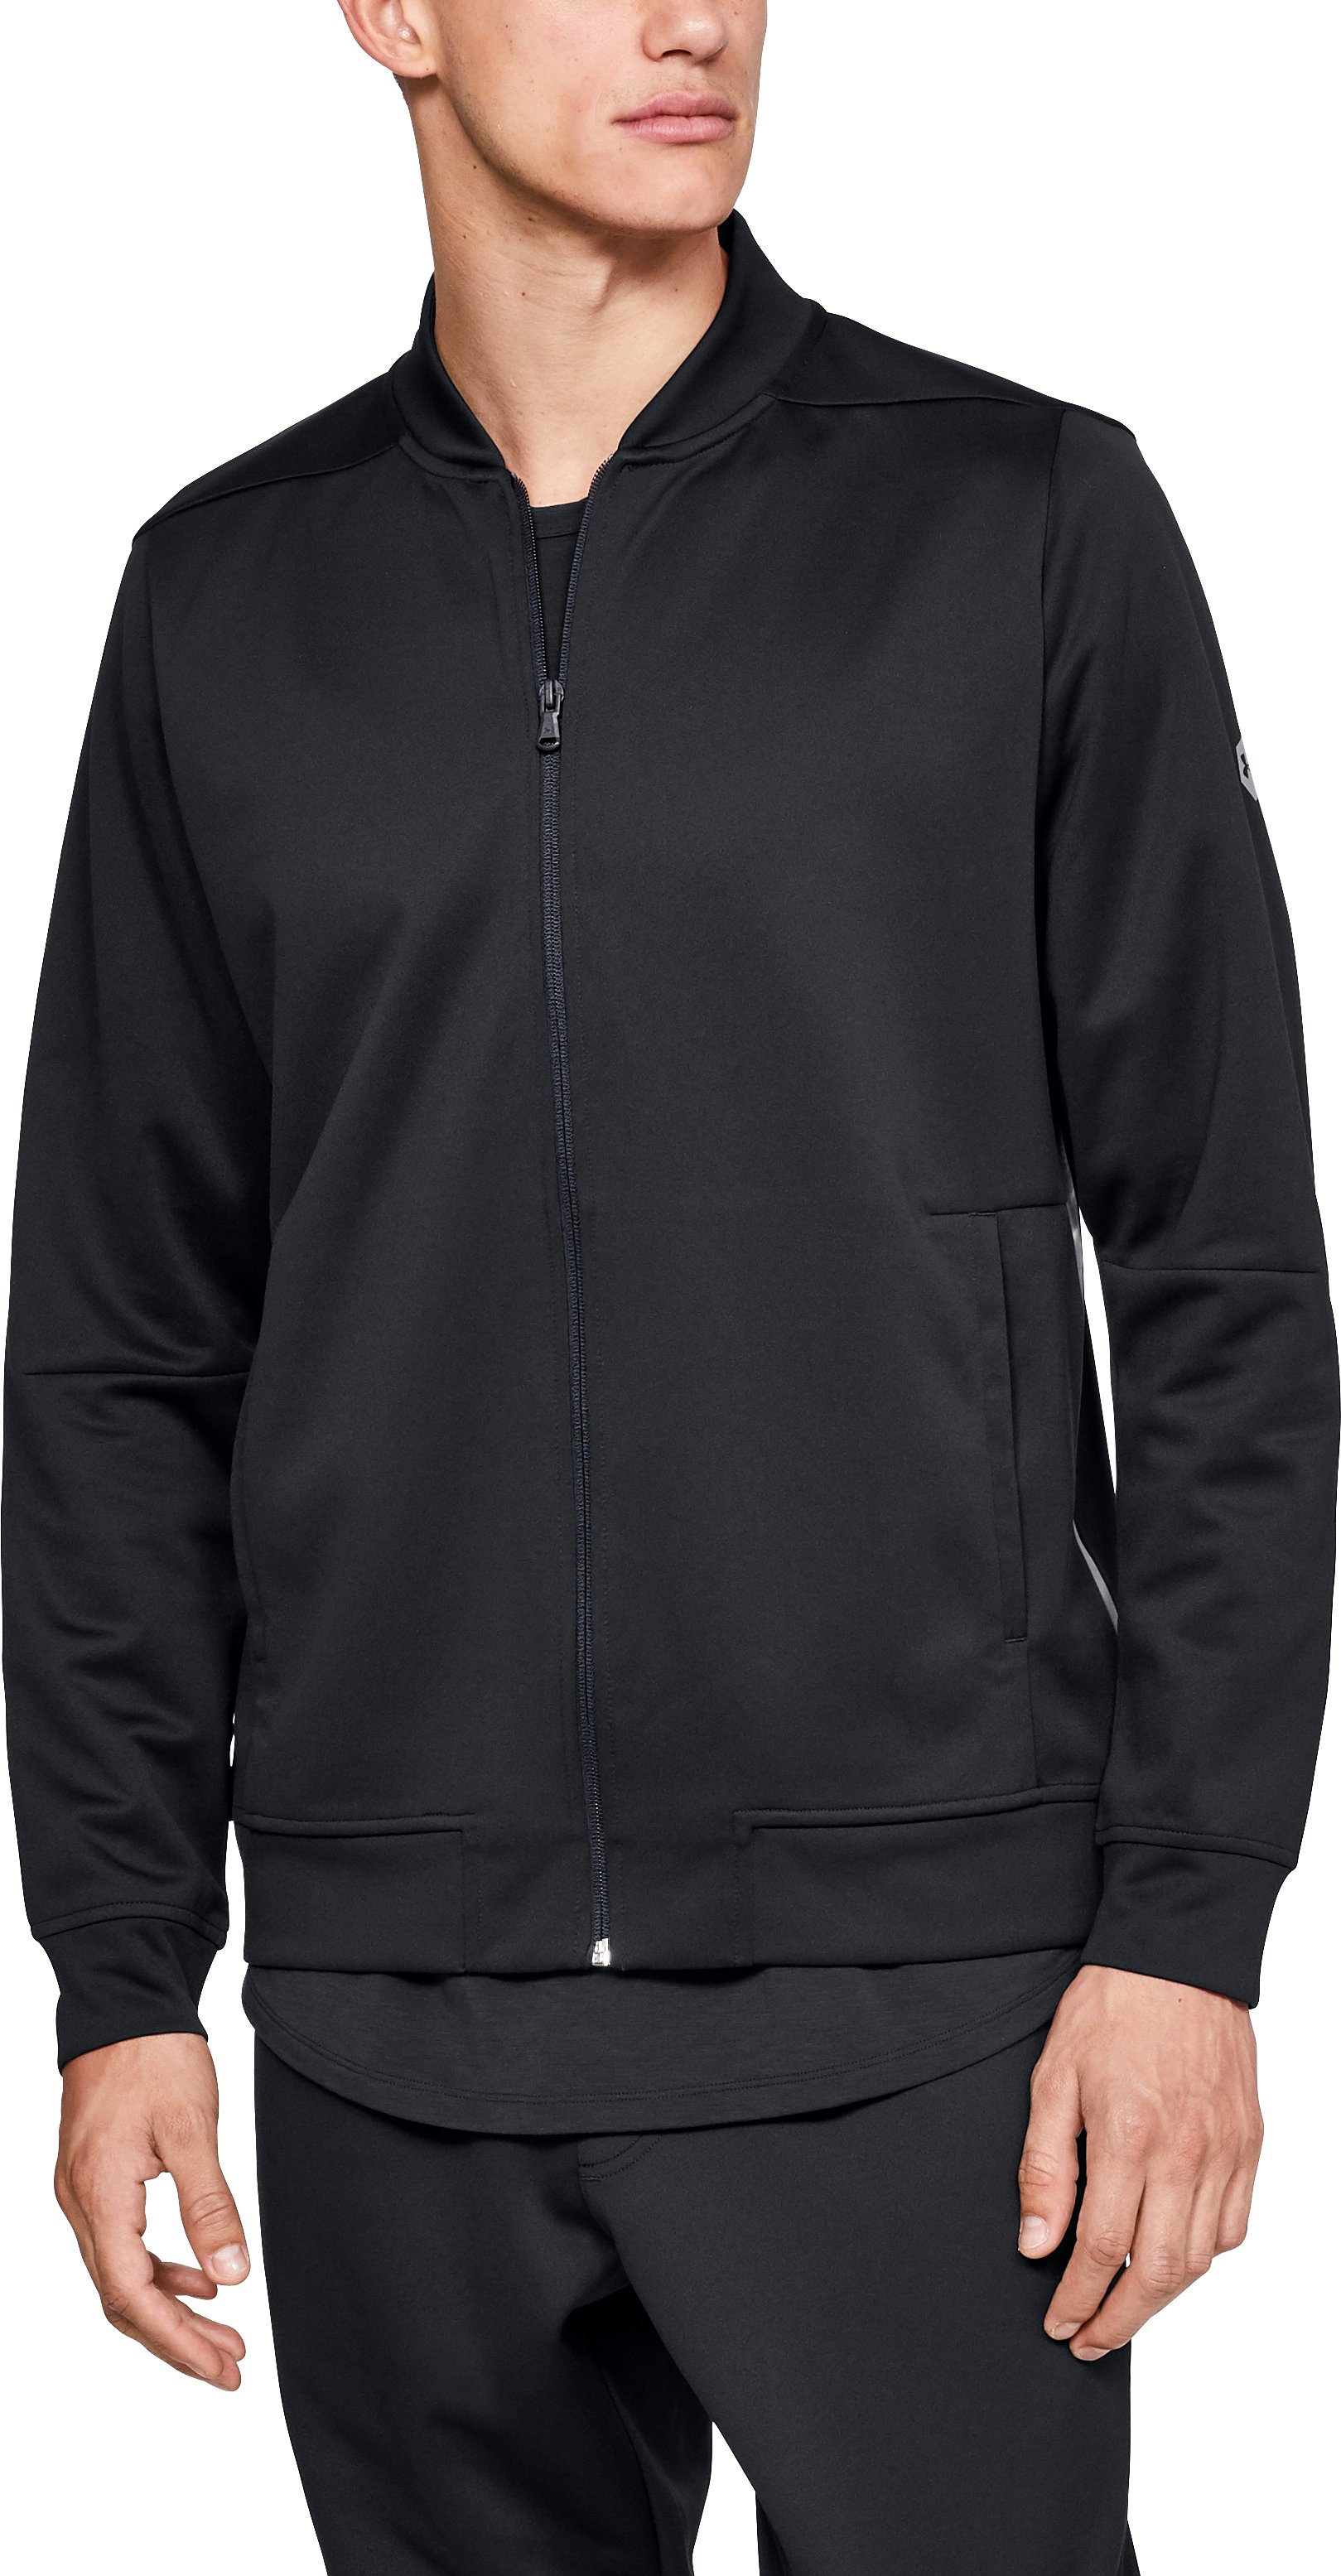 Men's Athlete Recovery Track Suit™ Jacket, Black ,